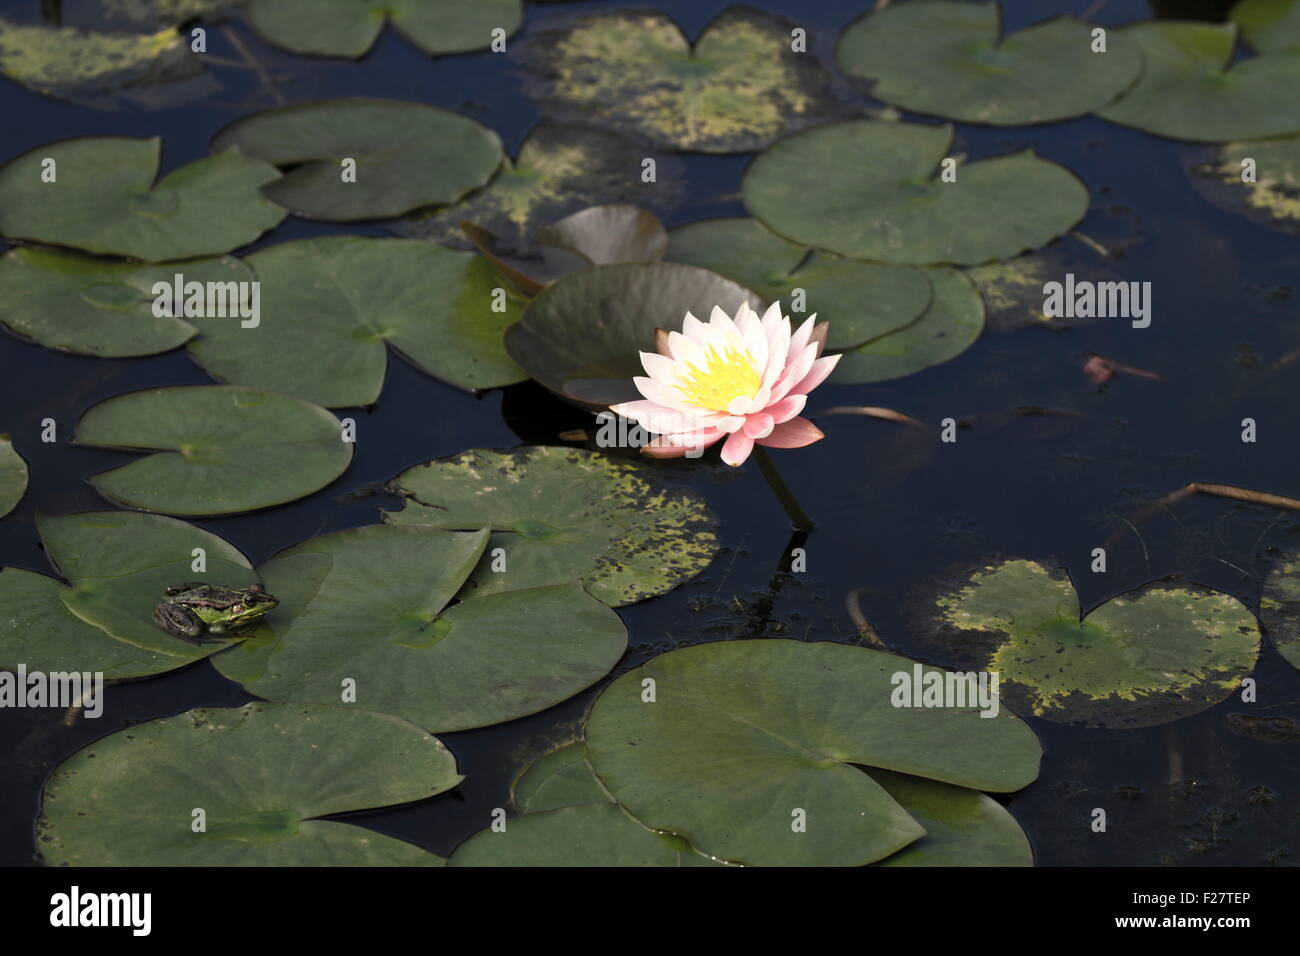 Bloom white lotus in natural habitat stock photo 87454046 alamy bloom white lotus in natural habitat mightylinksfo